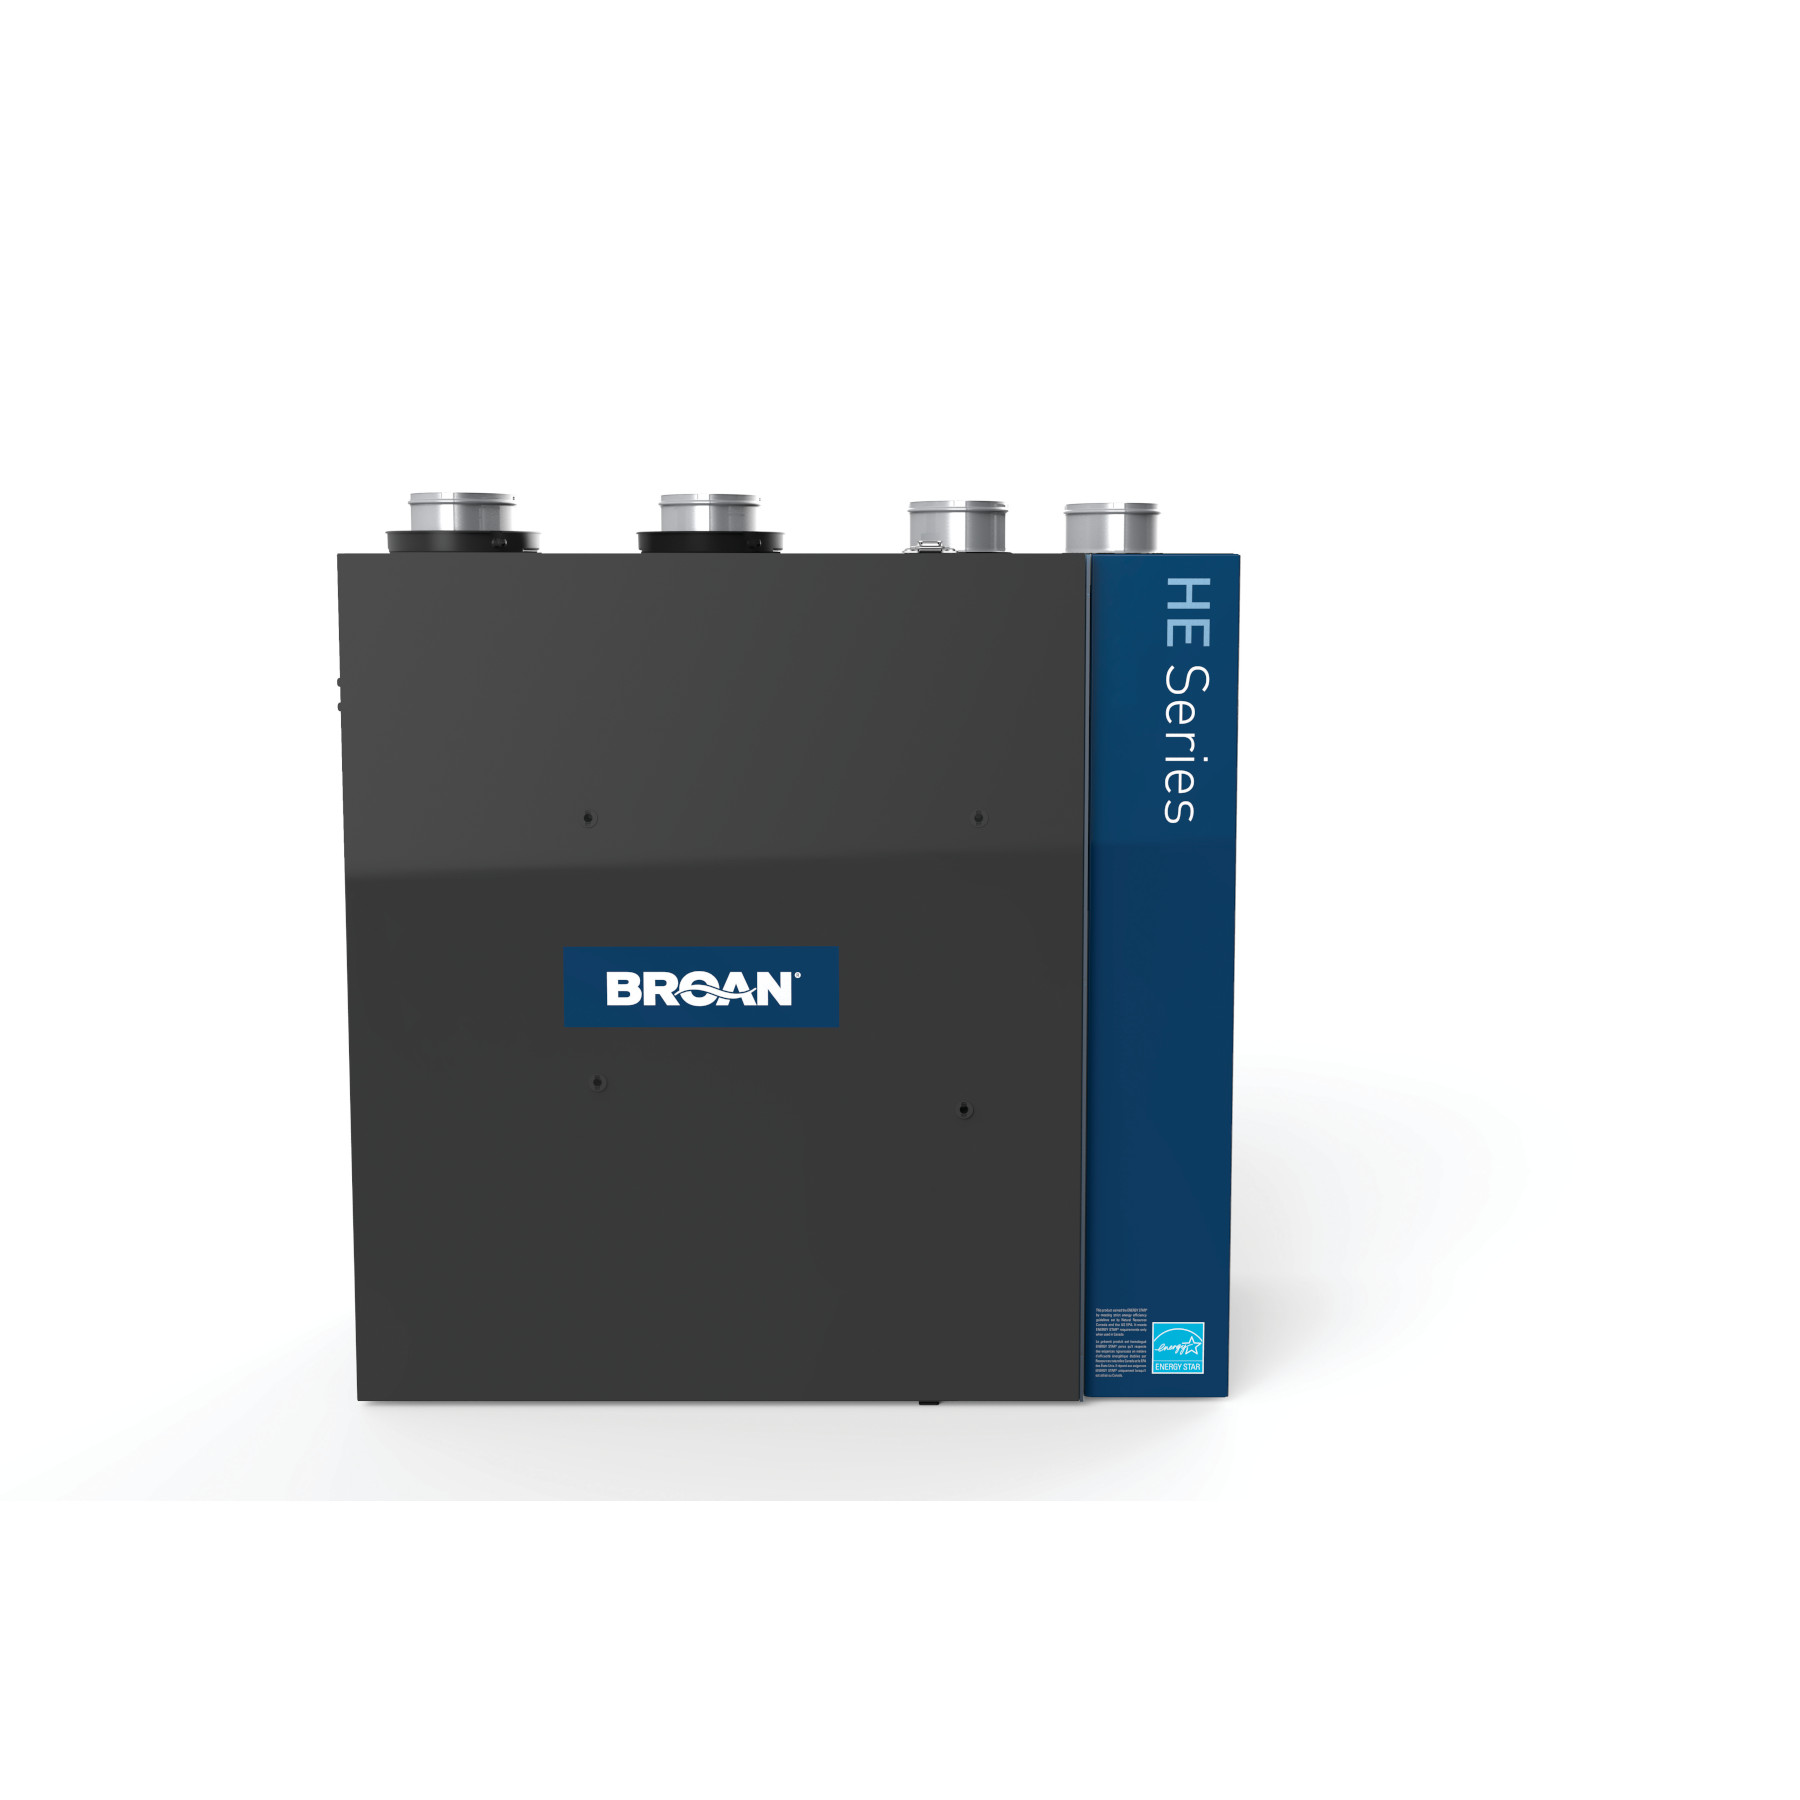 Broan® HE Series Energy Recovery Ventilator, 210 CFM at 0.4 in. w.g.